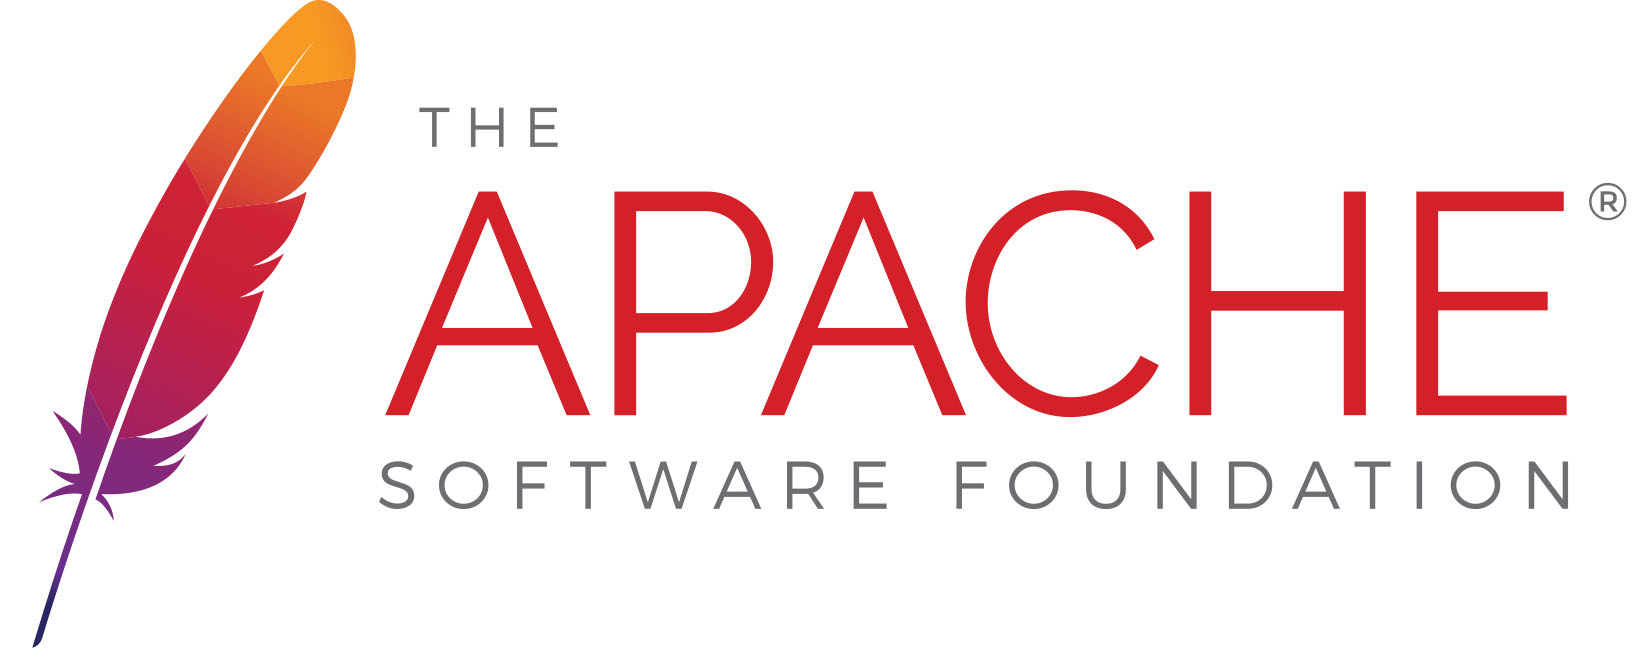 The Apache Software Foundation Announces Apache Mesos v1.0